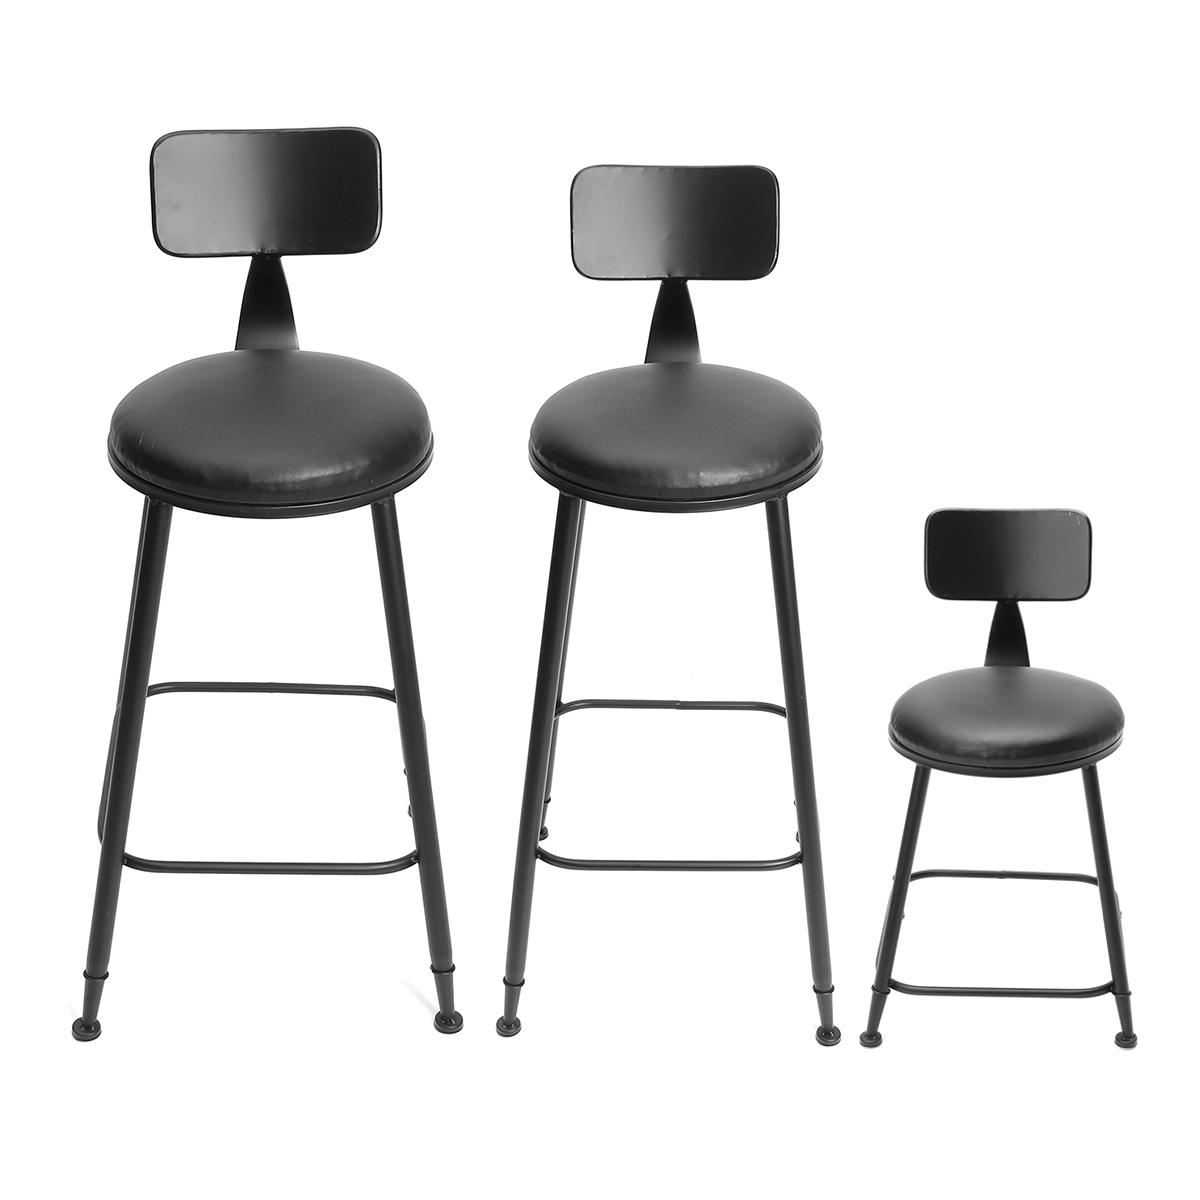 Terrific Bar Stools For Kitchen Islands Industrial Rustic Retro Metal Bar Stool Leather Back Counter Chair Decorations Volgopoint Inzonedesignstudio Interior Chair Design Inzonedesignstudiocom